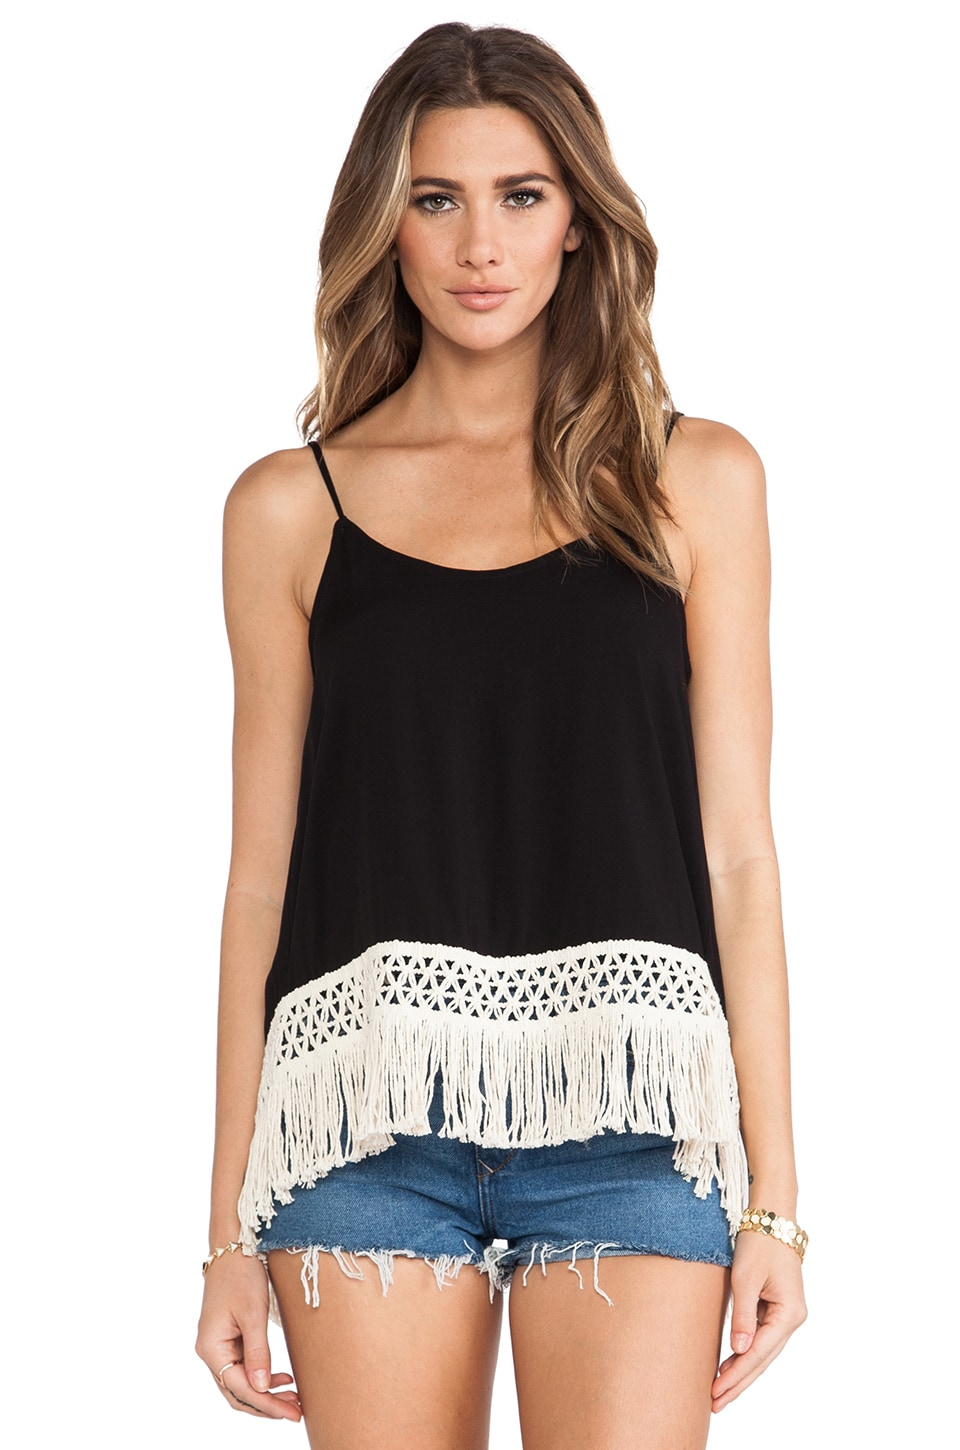 LIV Fringe Cami Tank in Black & Cream Lace